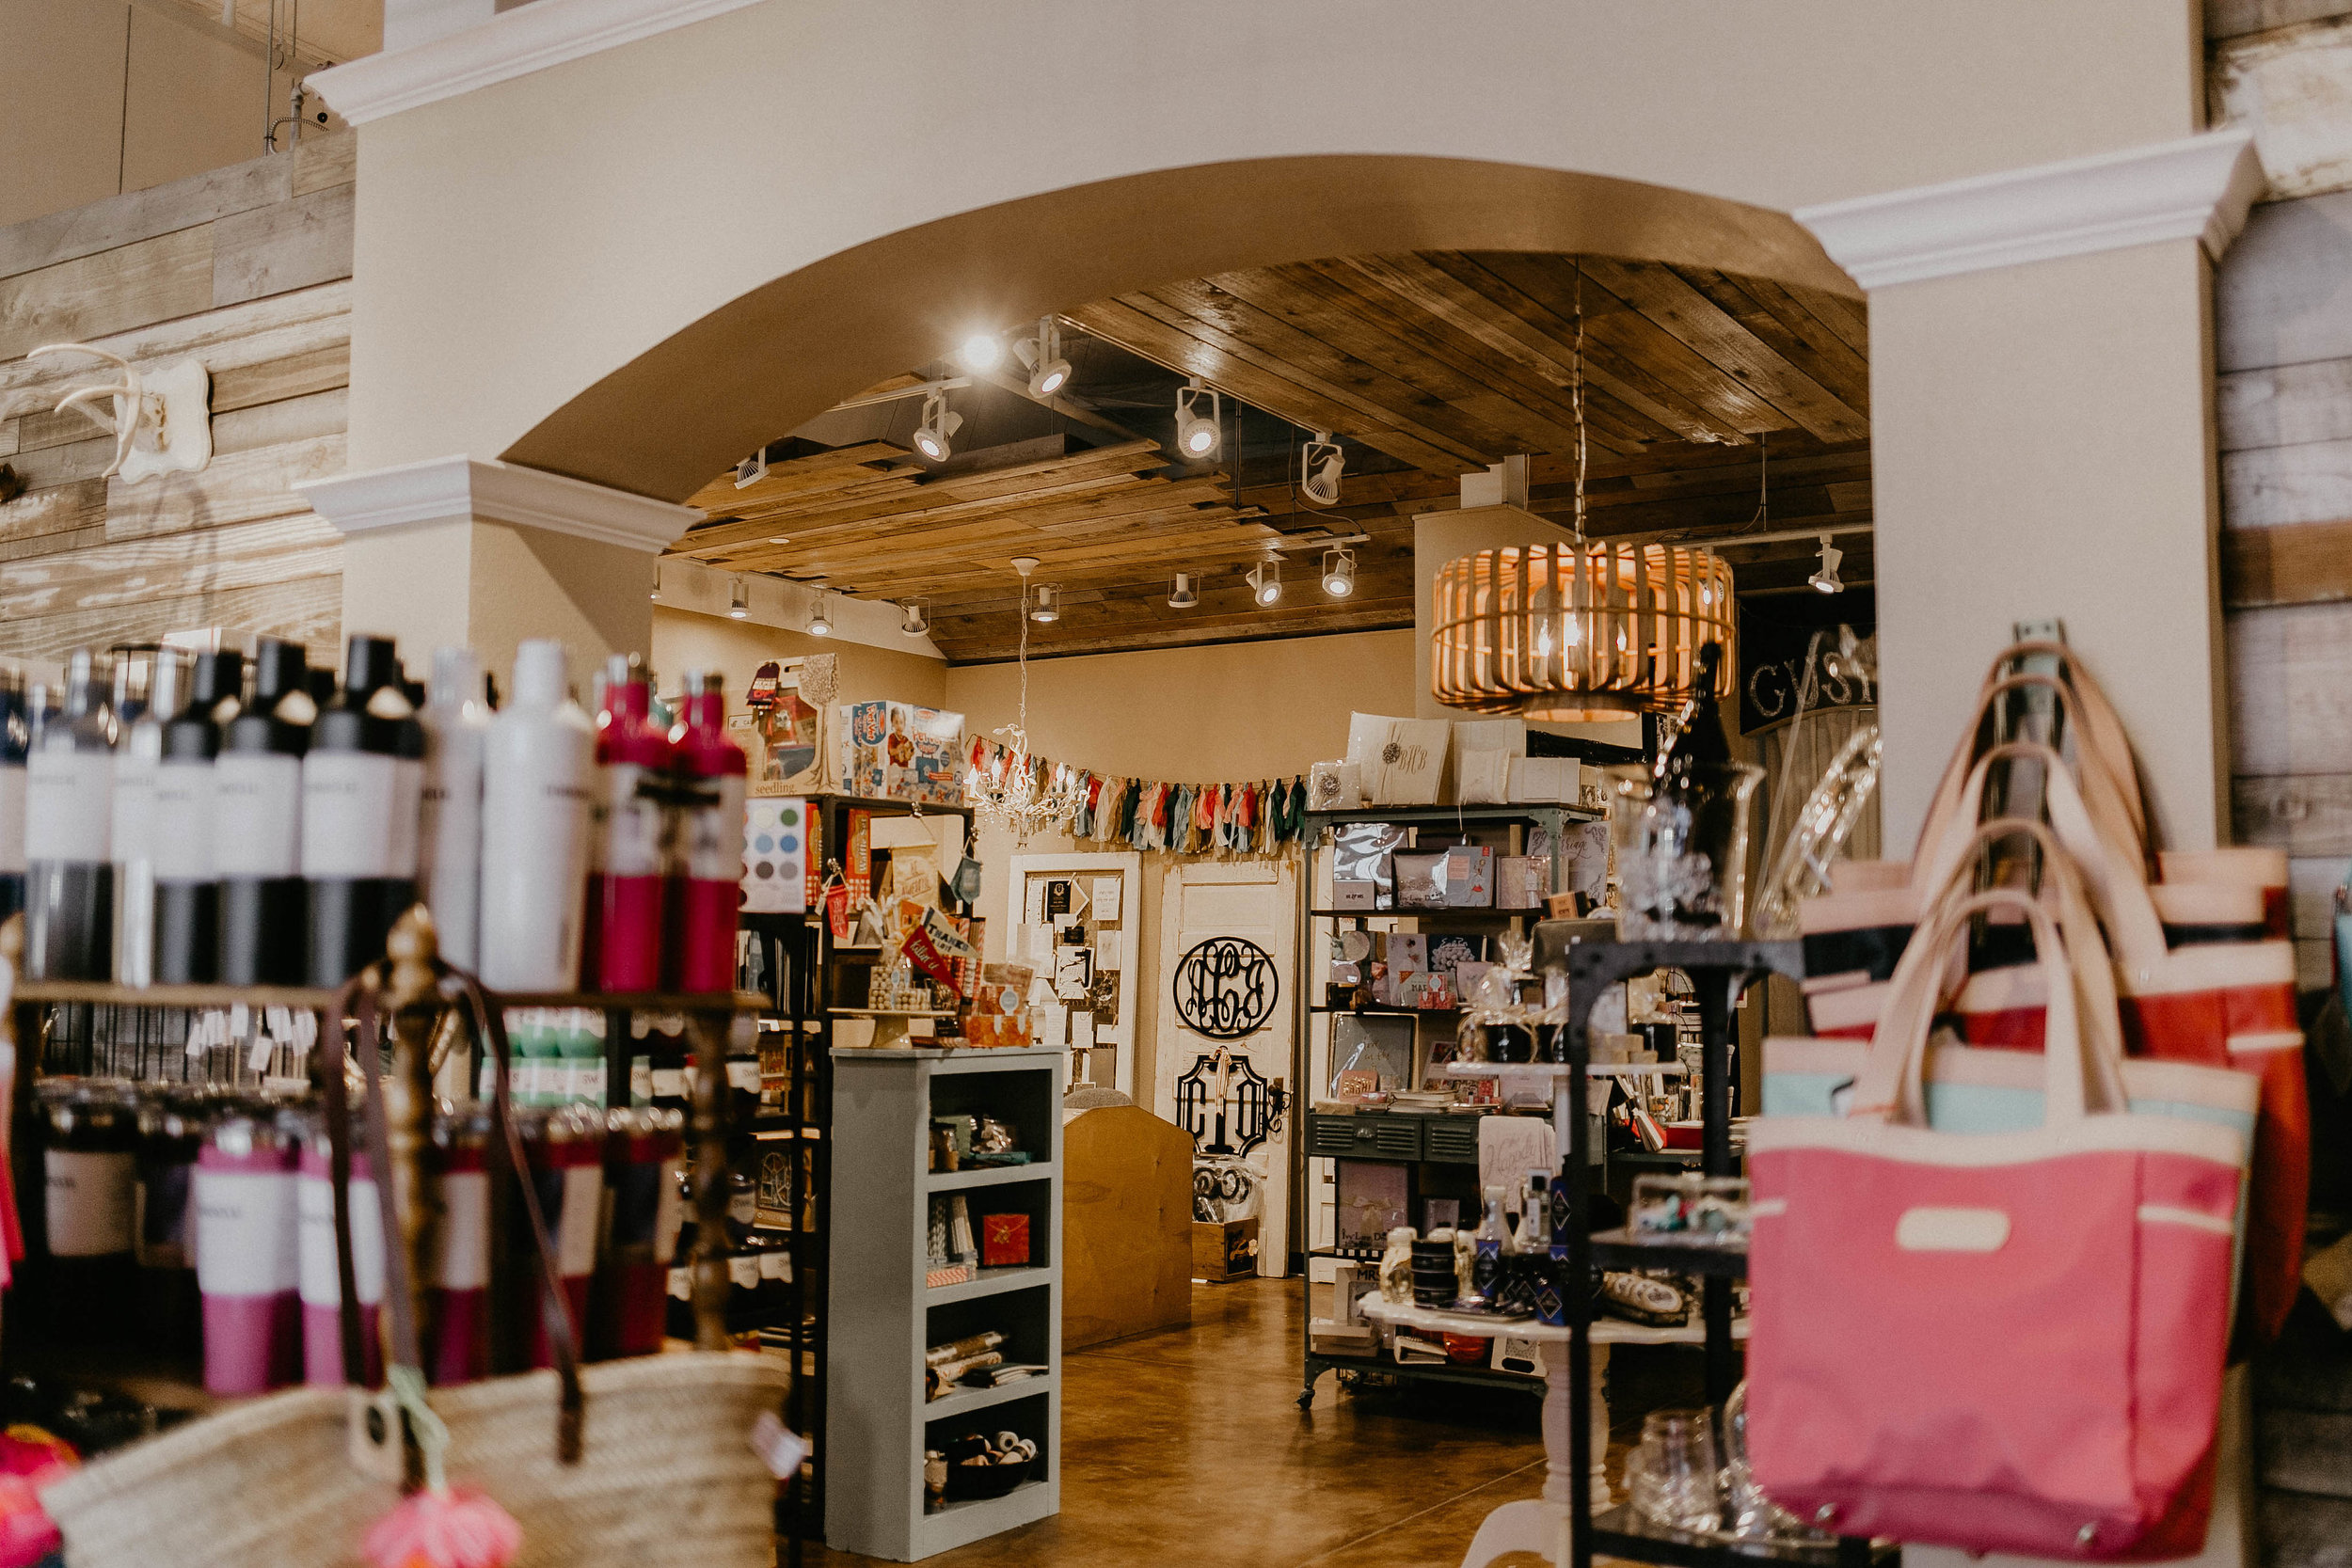 Our reccomendation - The product mix changes on a regular basis, so anytime you are shopping for a gift or a special occasion make sure you check out all of the creative invitations, dog treats, candles, and Jon Hart bags that can be hot stamped in store.